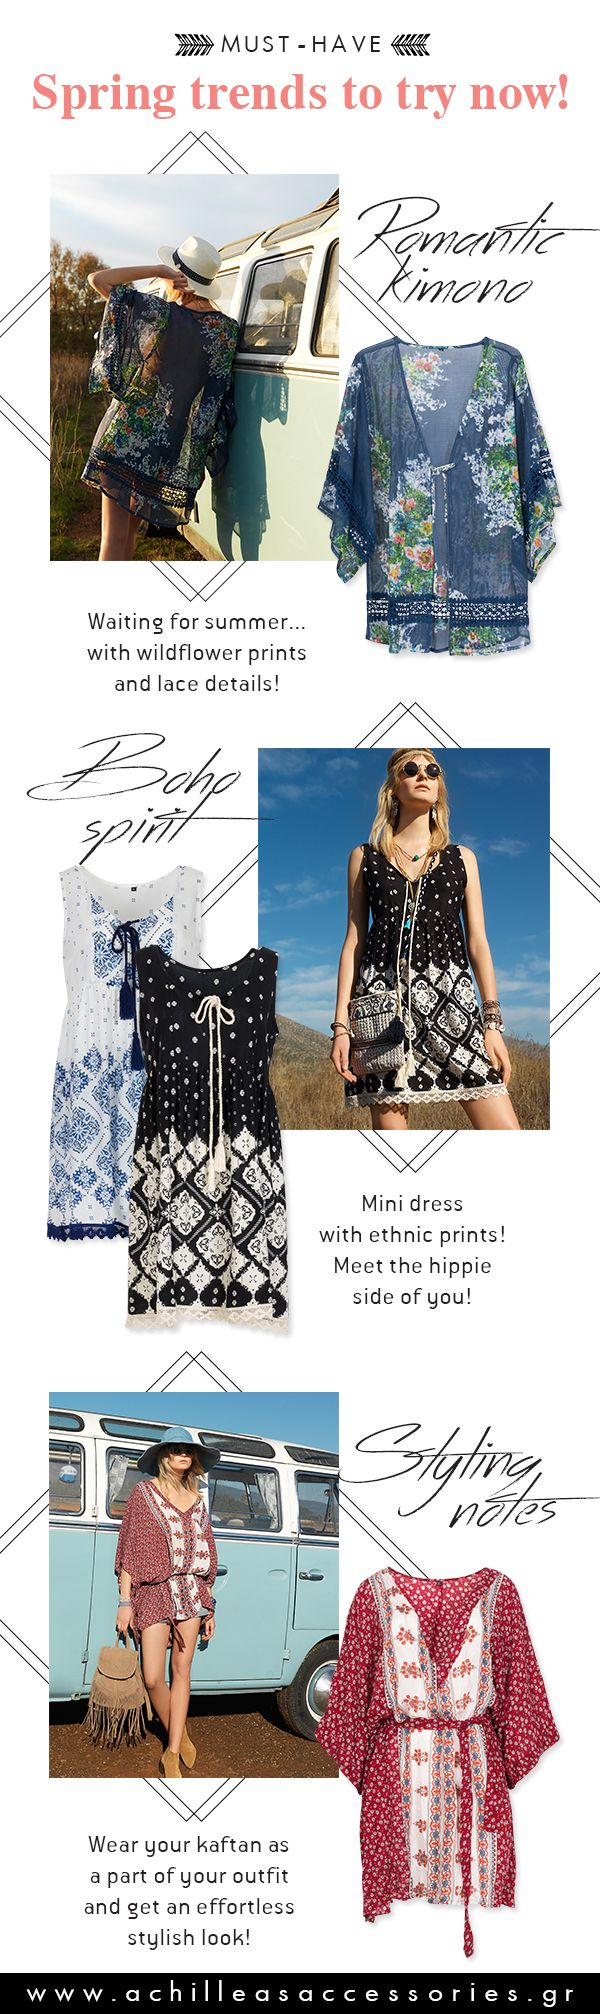 Spring trends to try now! #spring #summer #kaftans #tunic #dresses #maxidress #trend